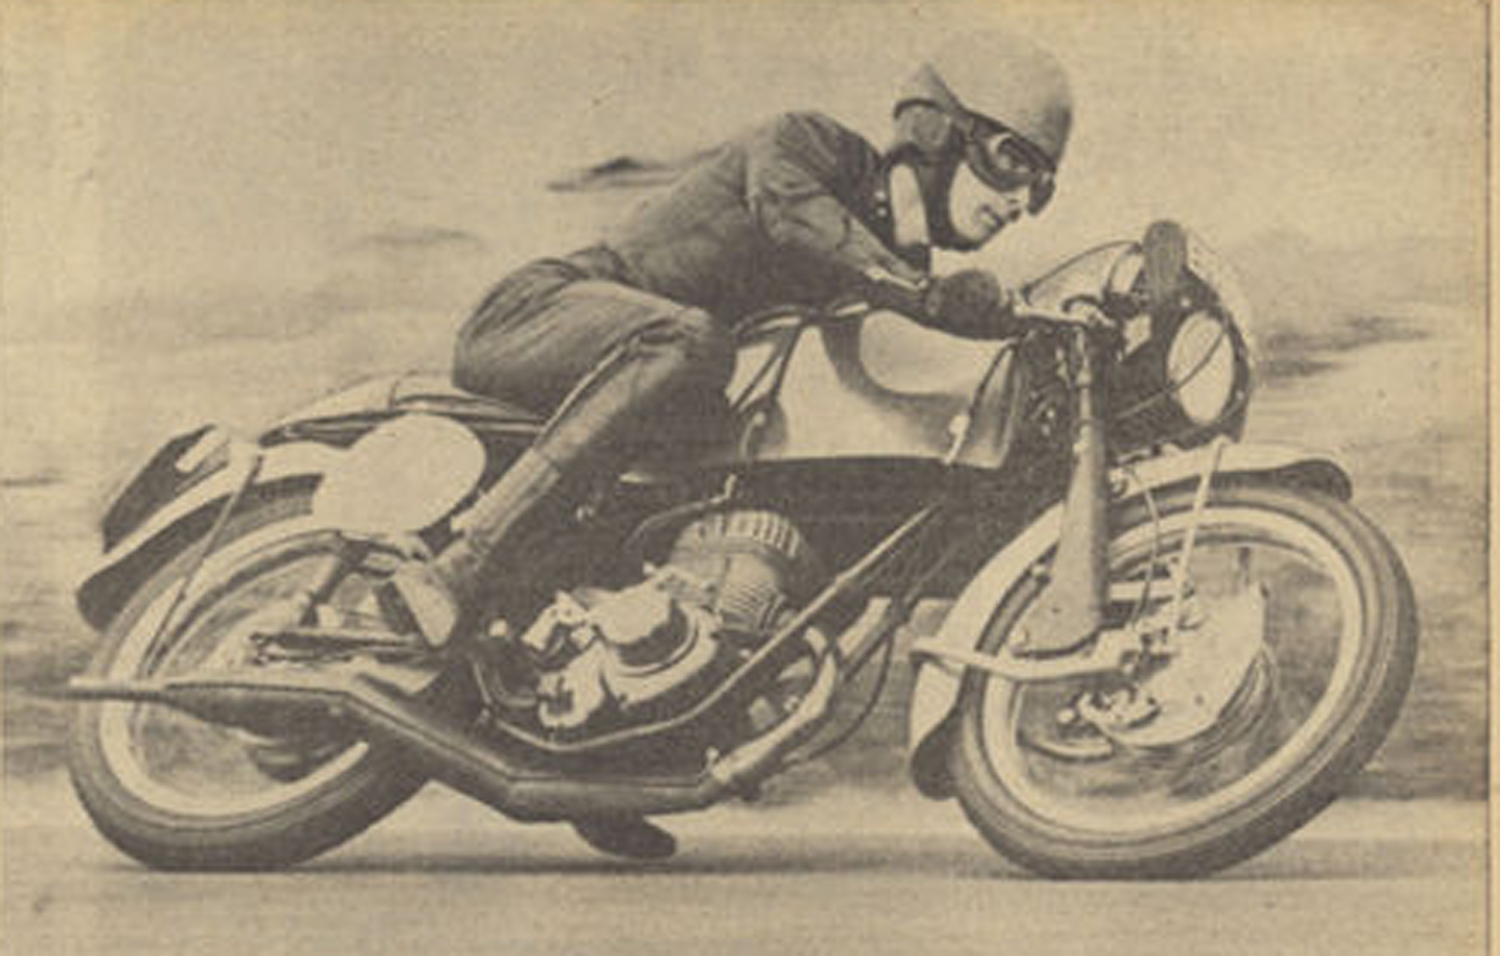 Sean Wood tests the Conquest for MCN in 1966